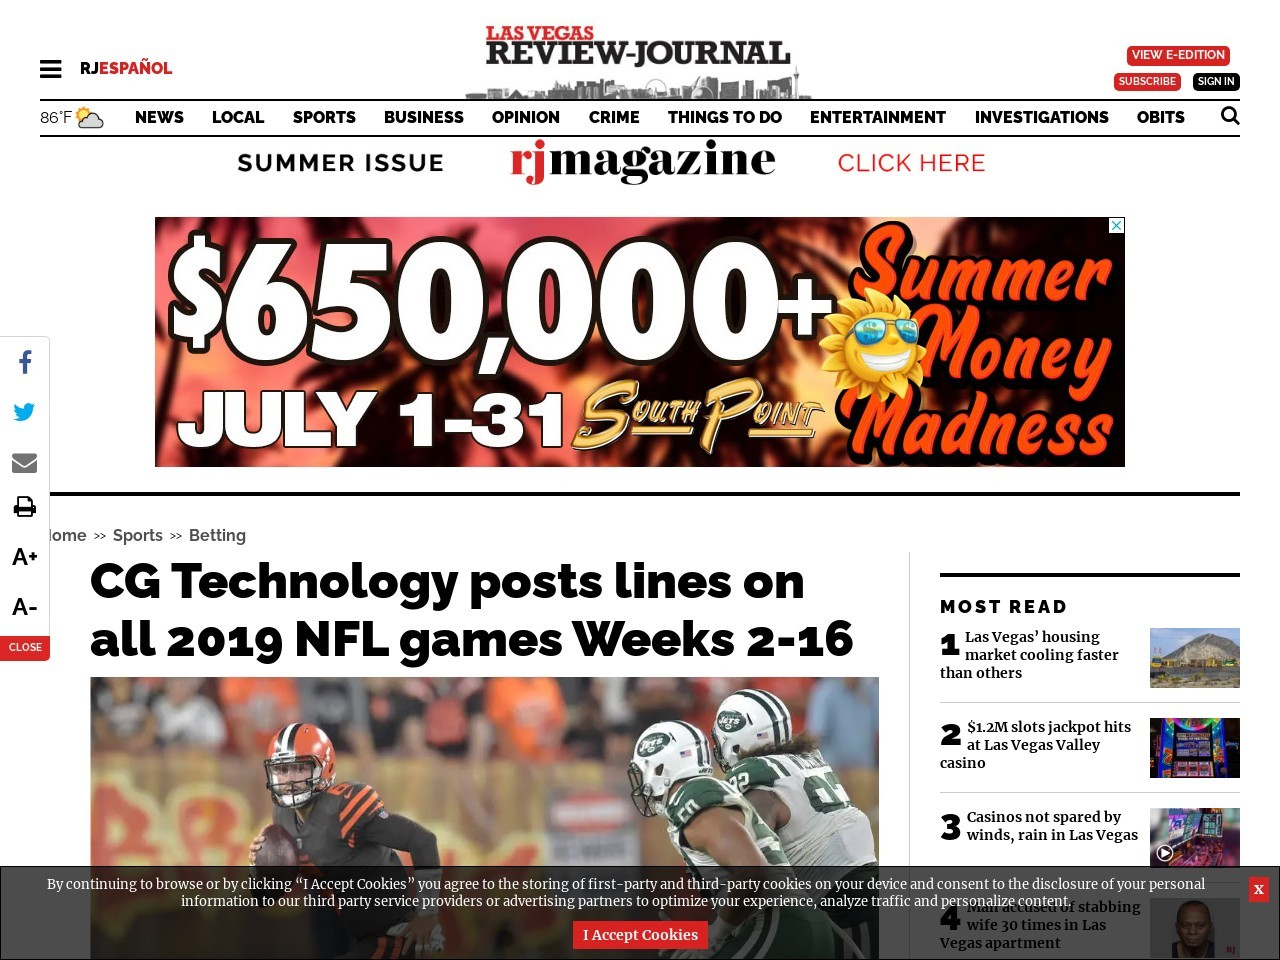 CG Technology posts lines on all 2019 NFL games Weeks 2-16